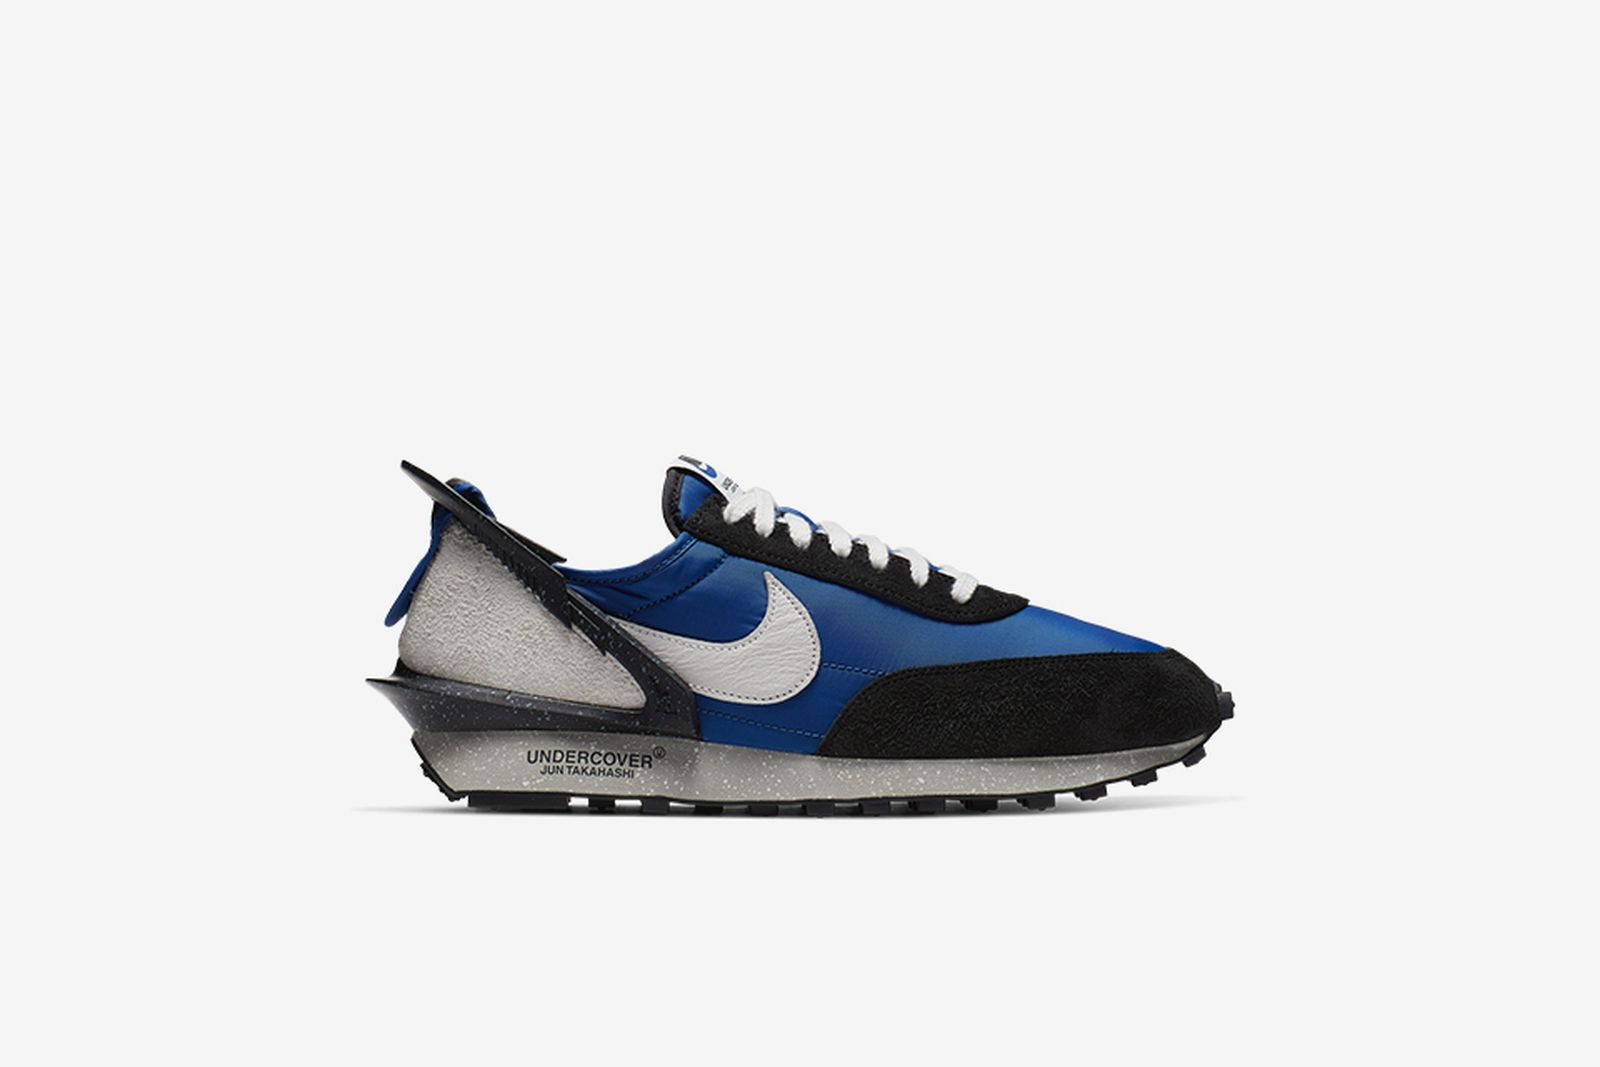 nike undercover ss19 release date price Paris Fashion Week SS19 runway undercover x nike